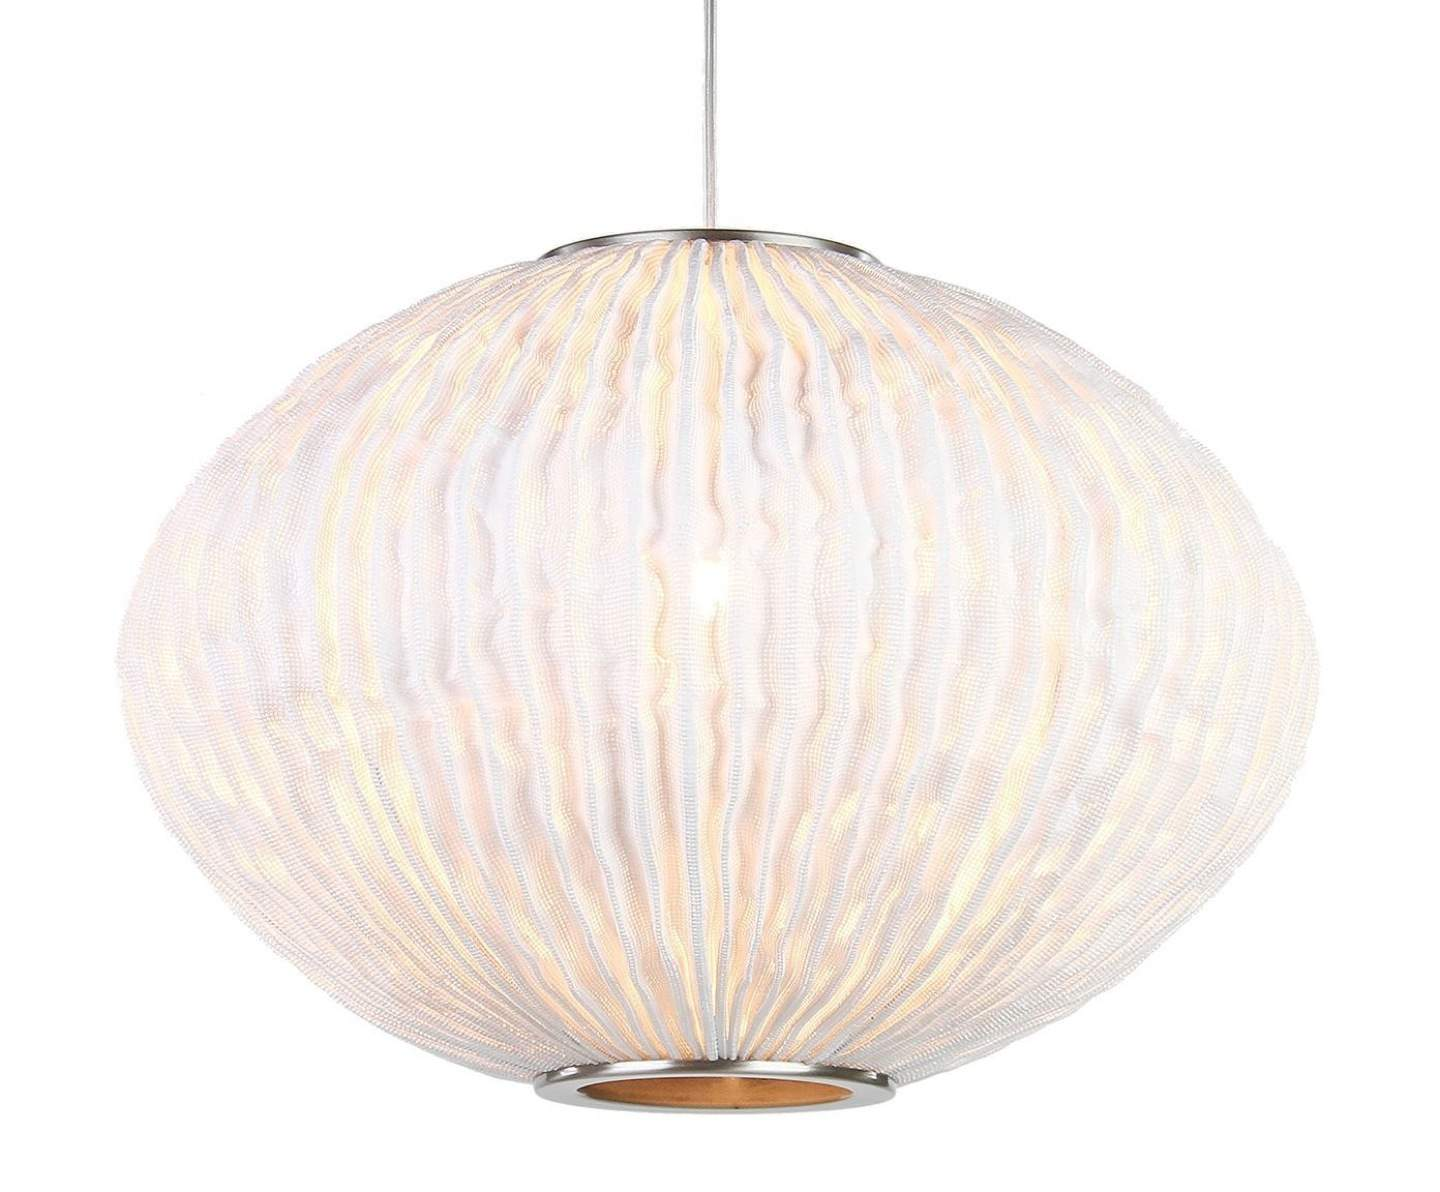 Coral Seaurchin Suspension LED